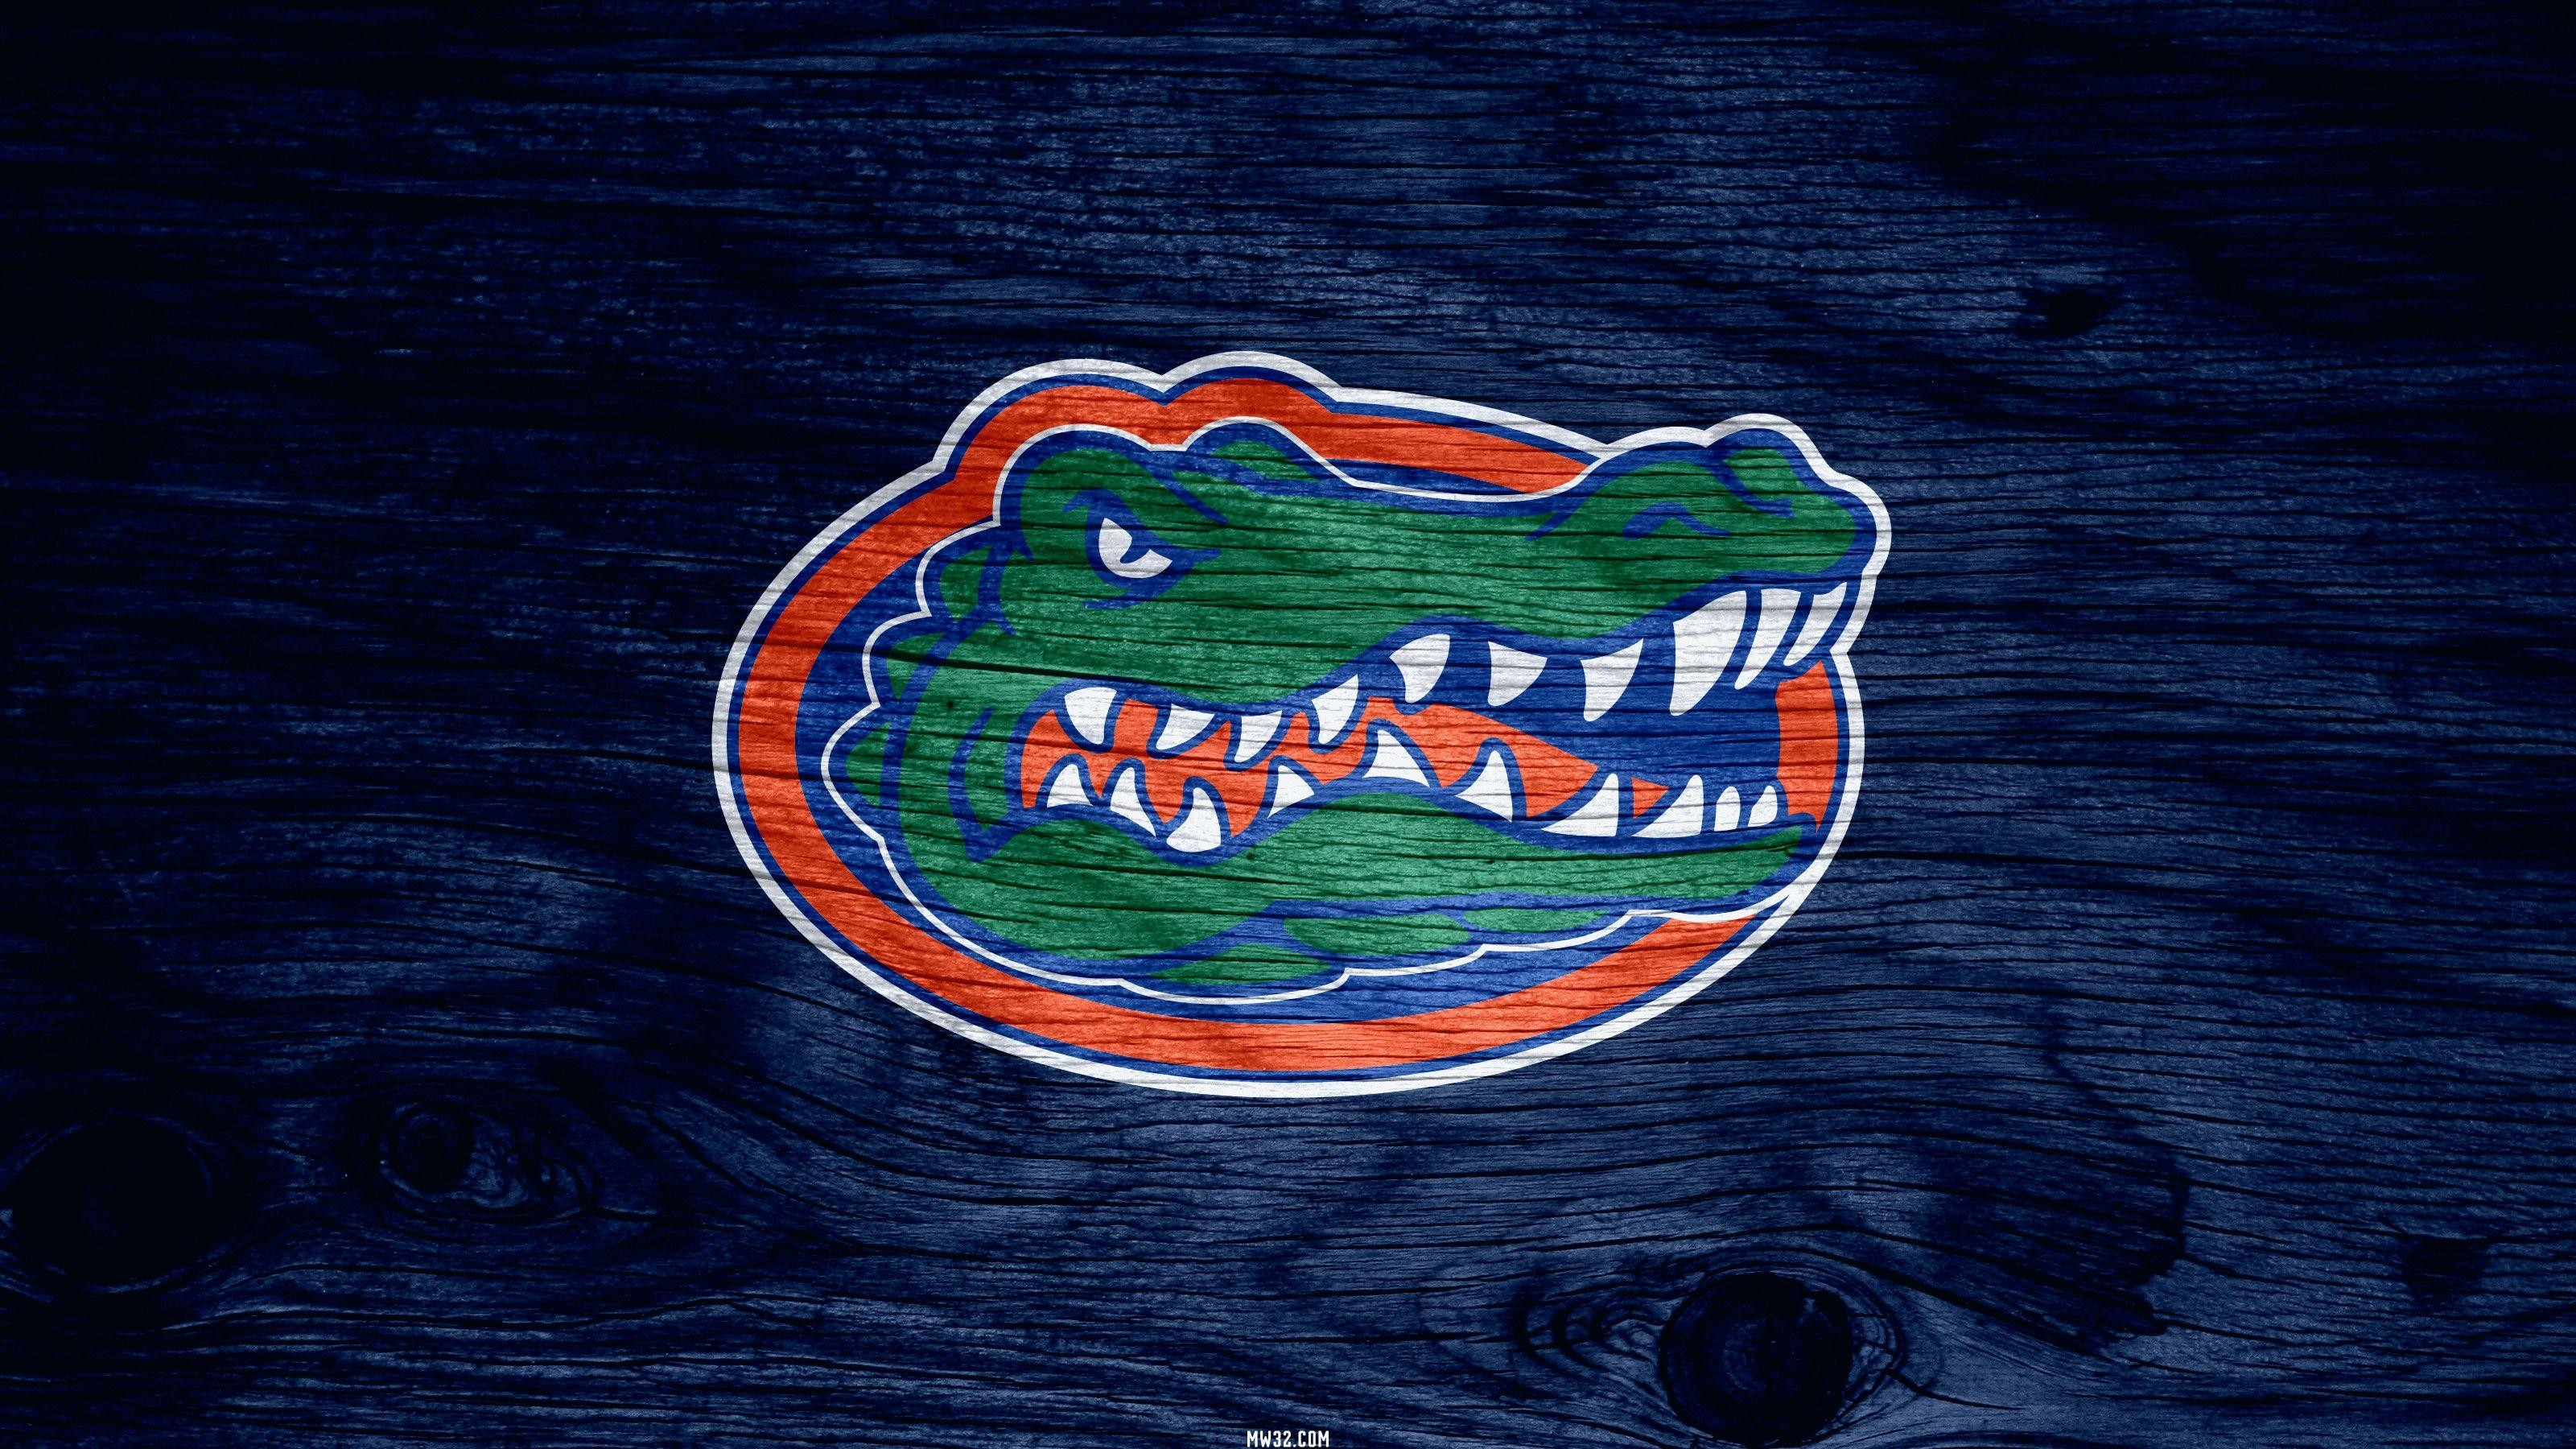 3201x1800 Free Download Amazing Florida Gators Football Images